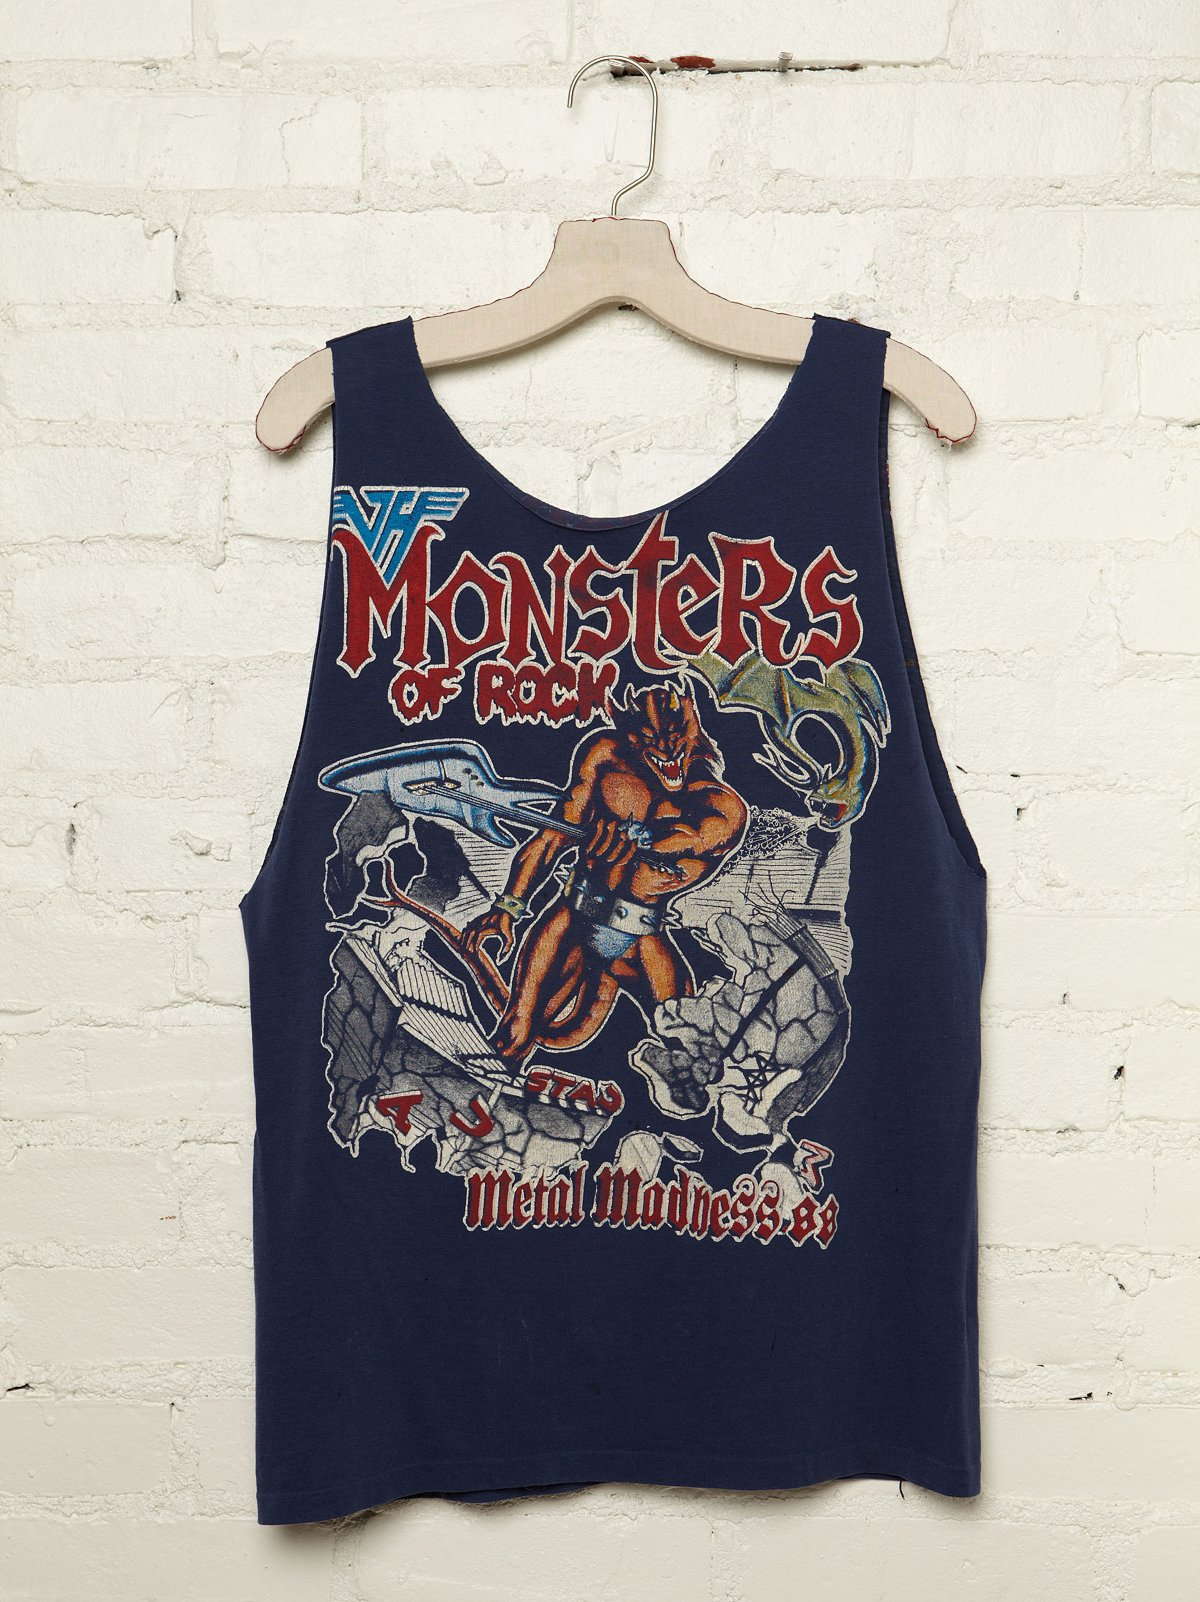 Vintage Monsters of Rock Tank